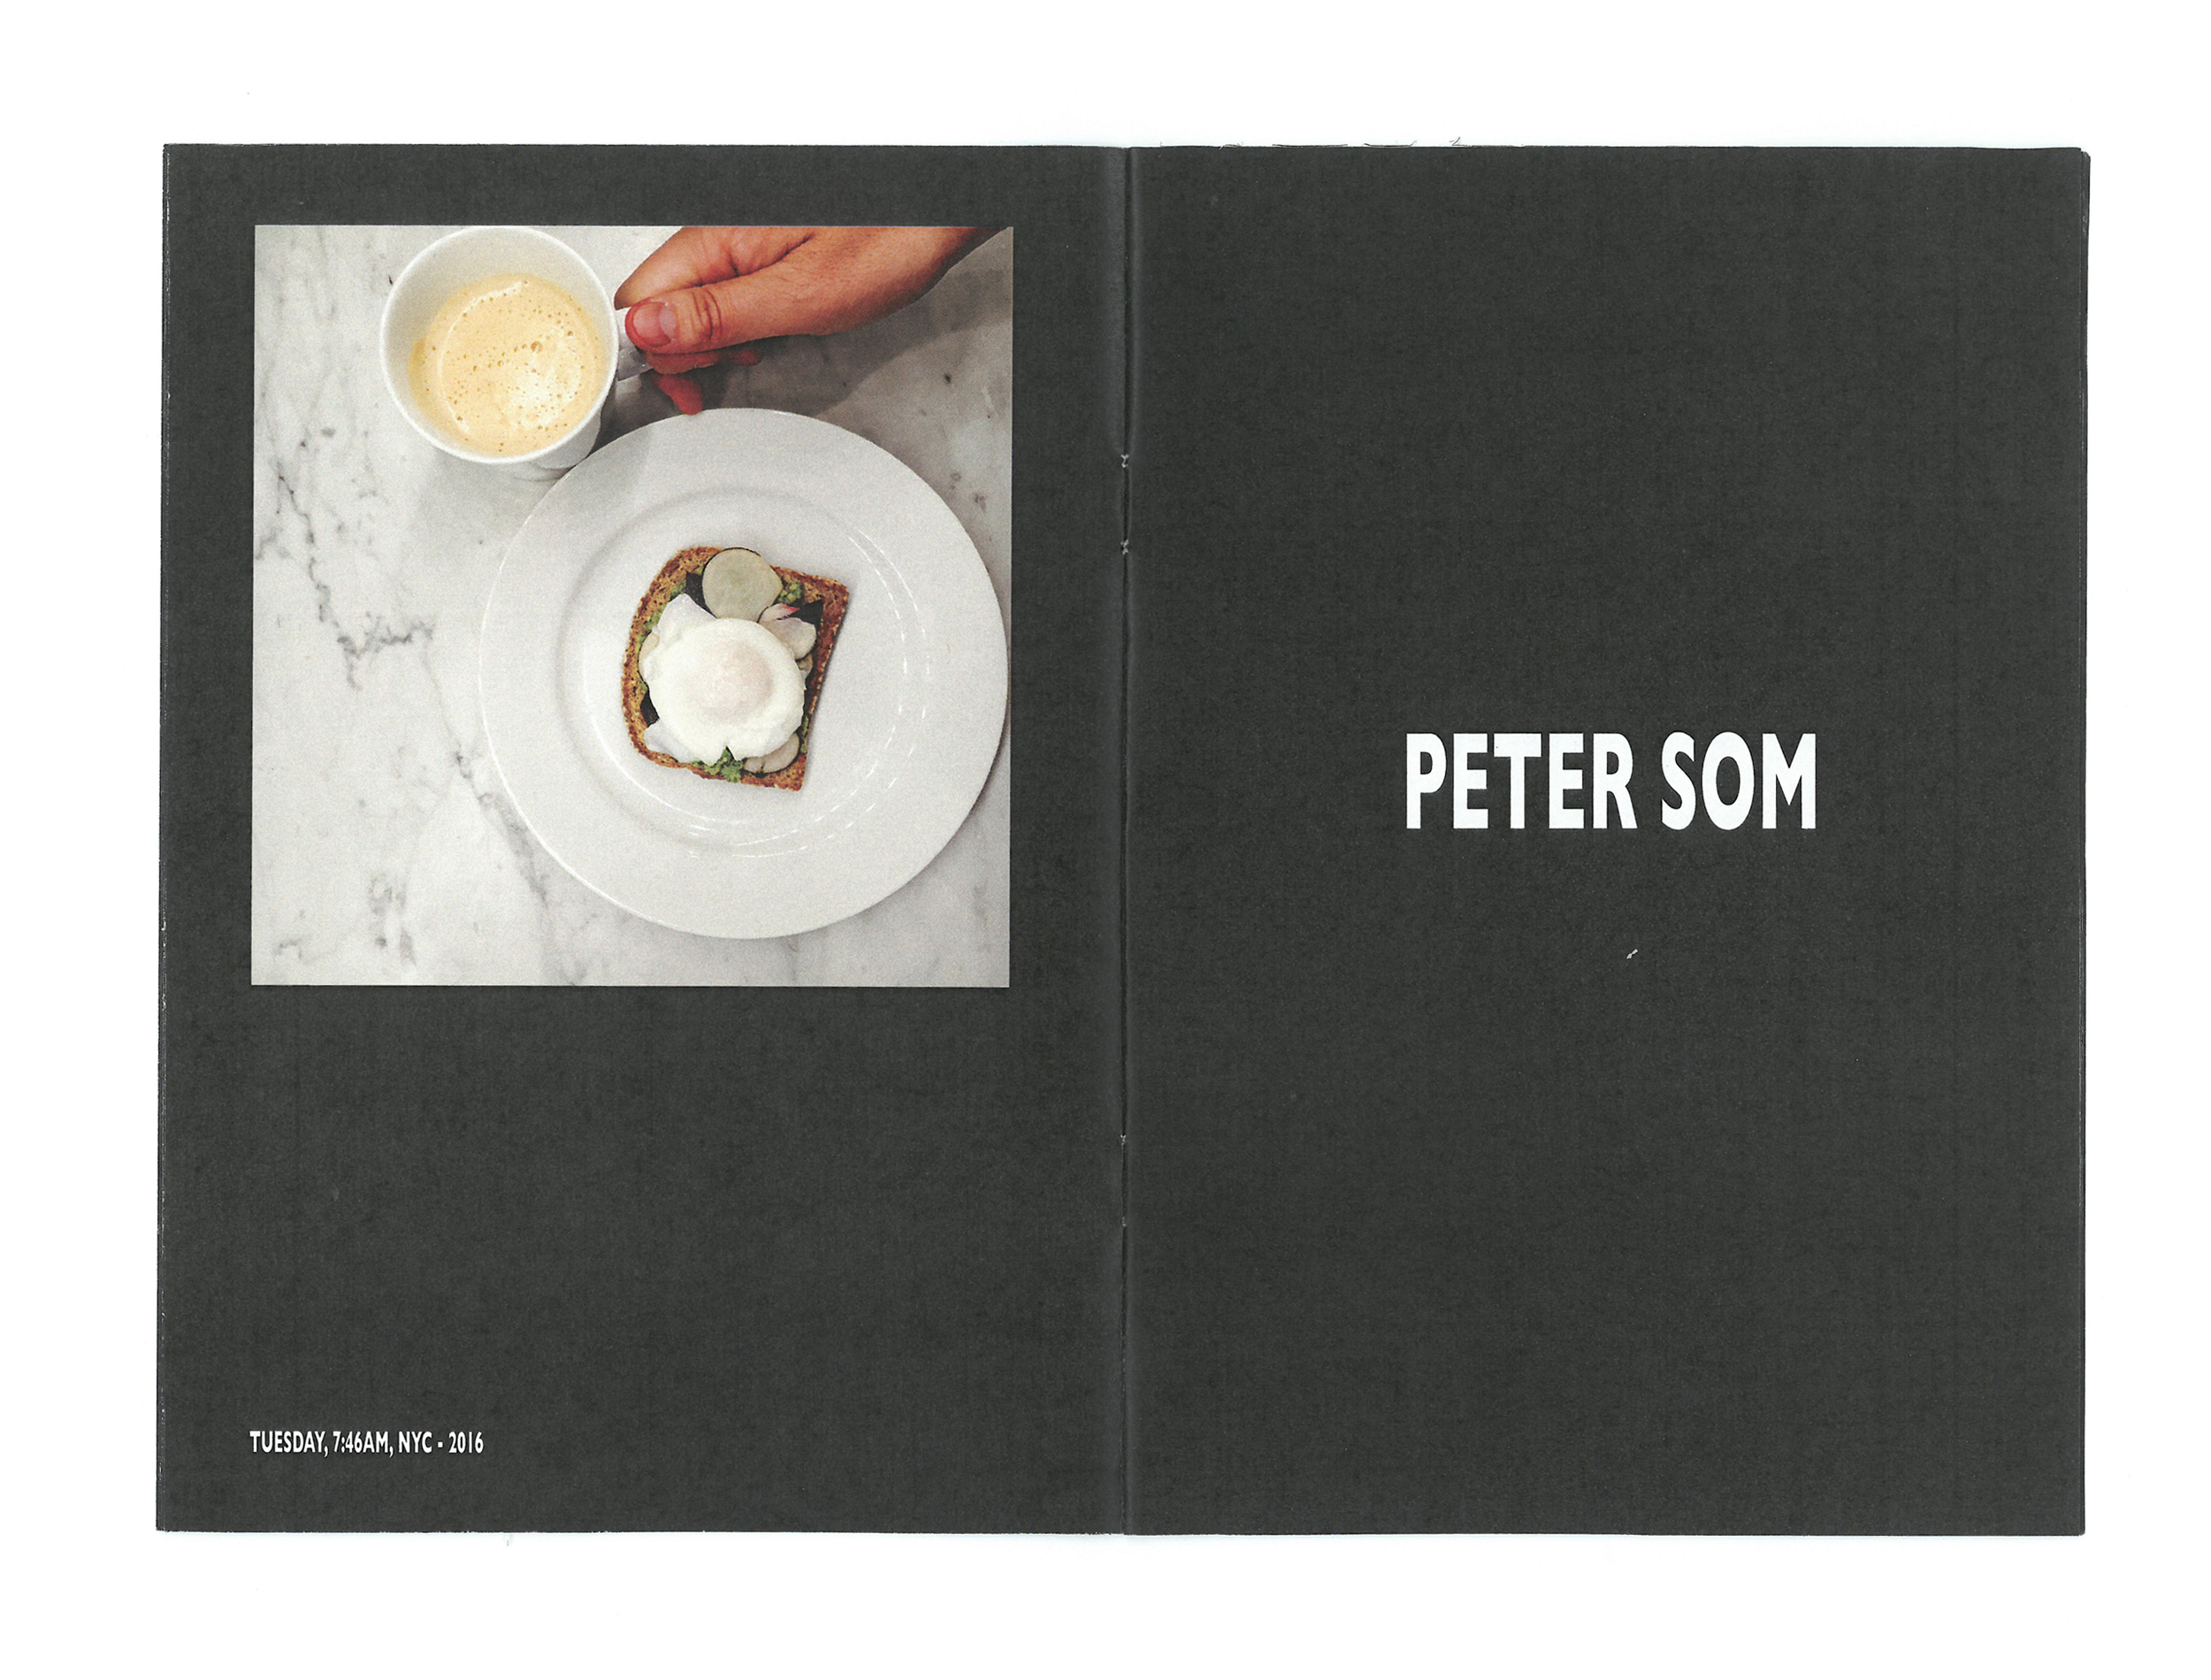 Time Zine: Breakfasttime by Peter Som featuring Tuesday, 7:45 AM, NYC, 2016